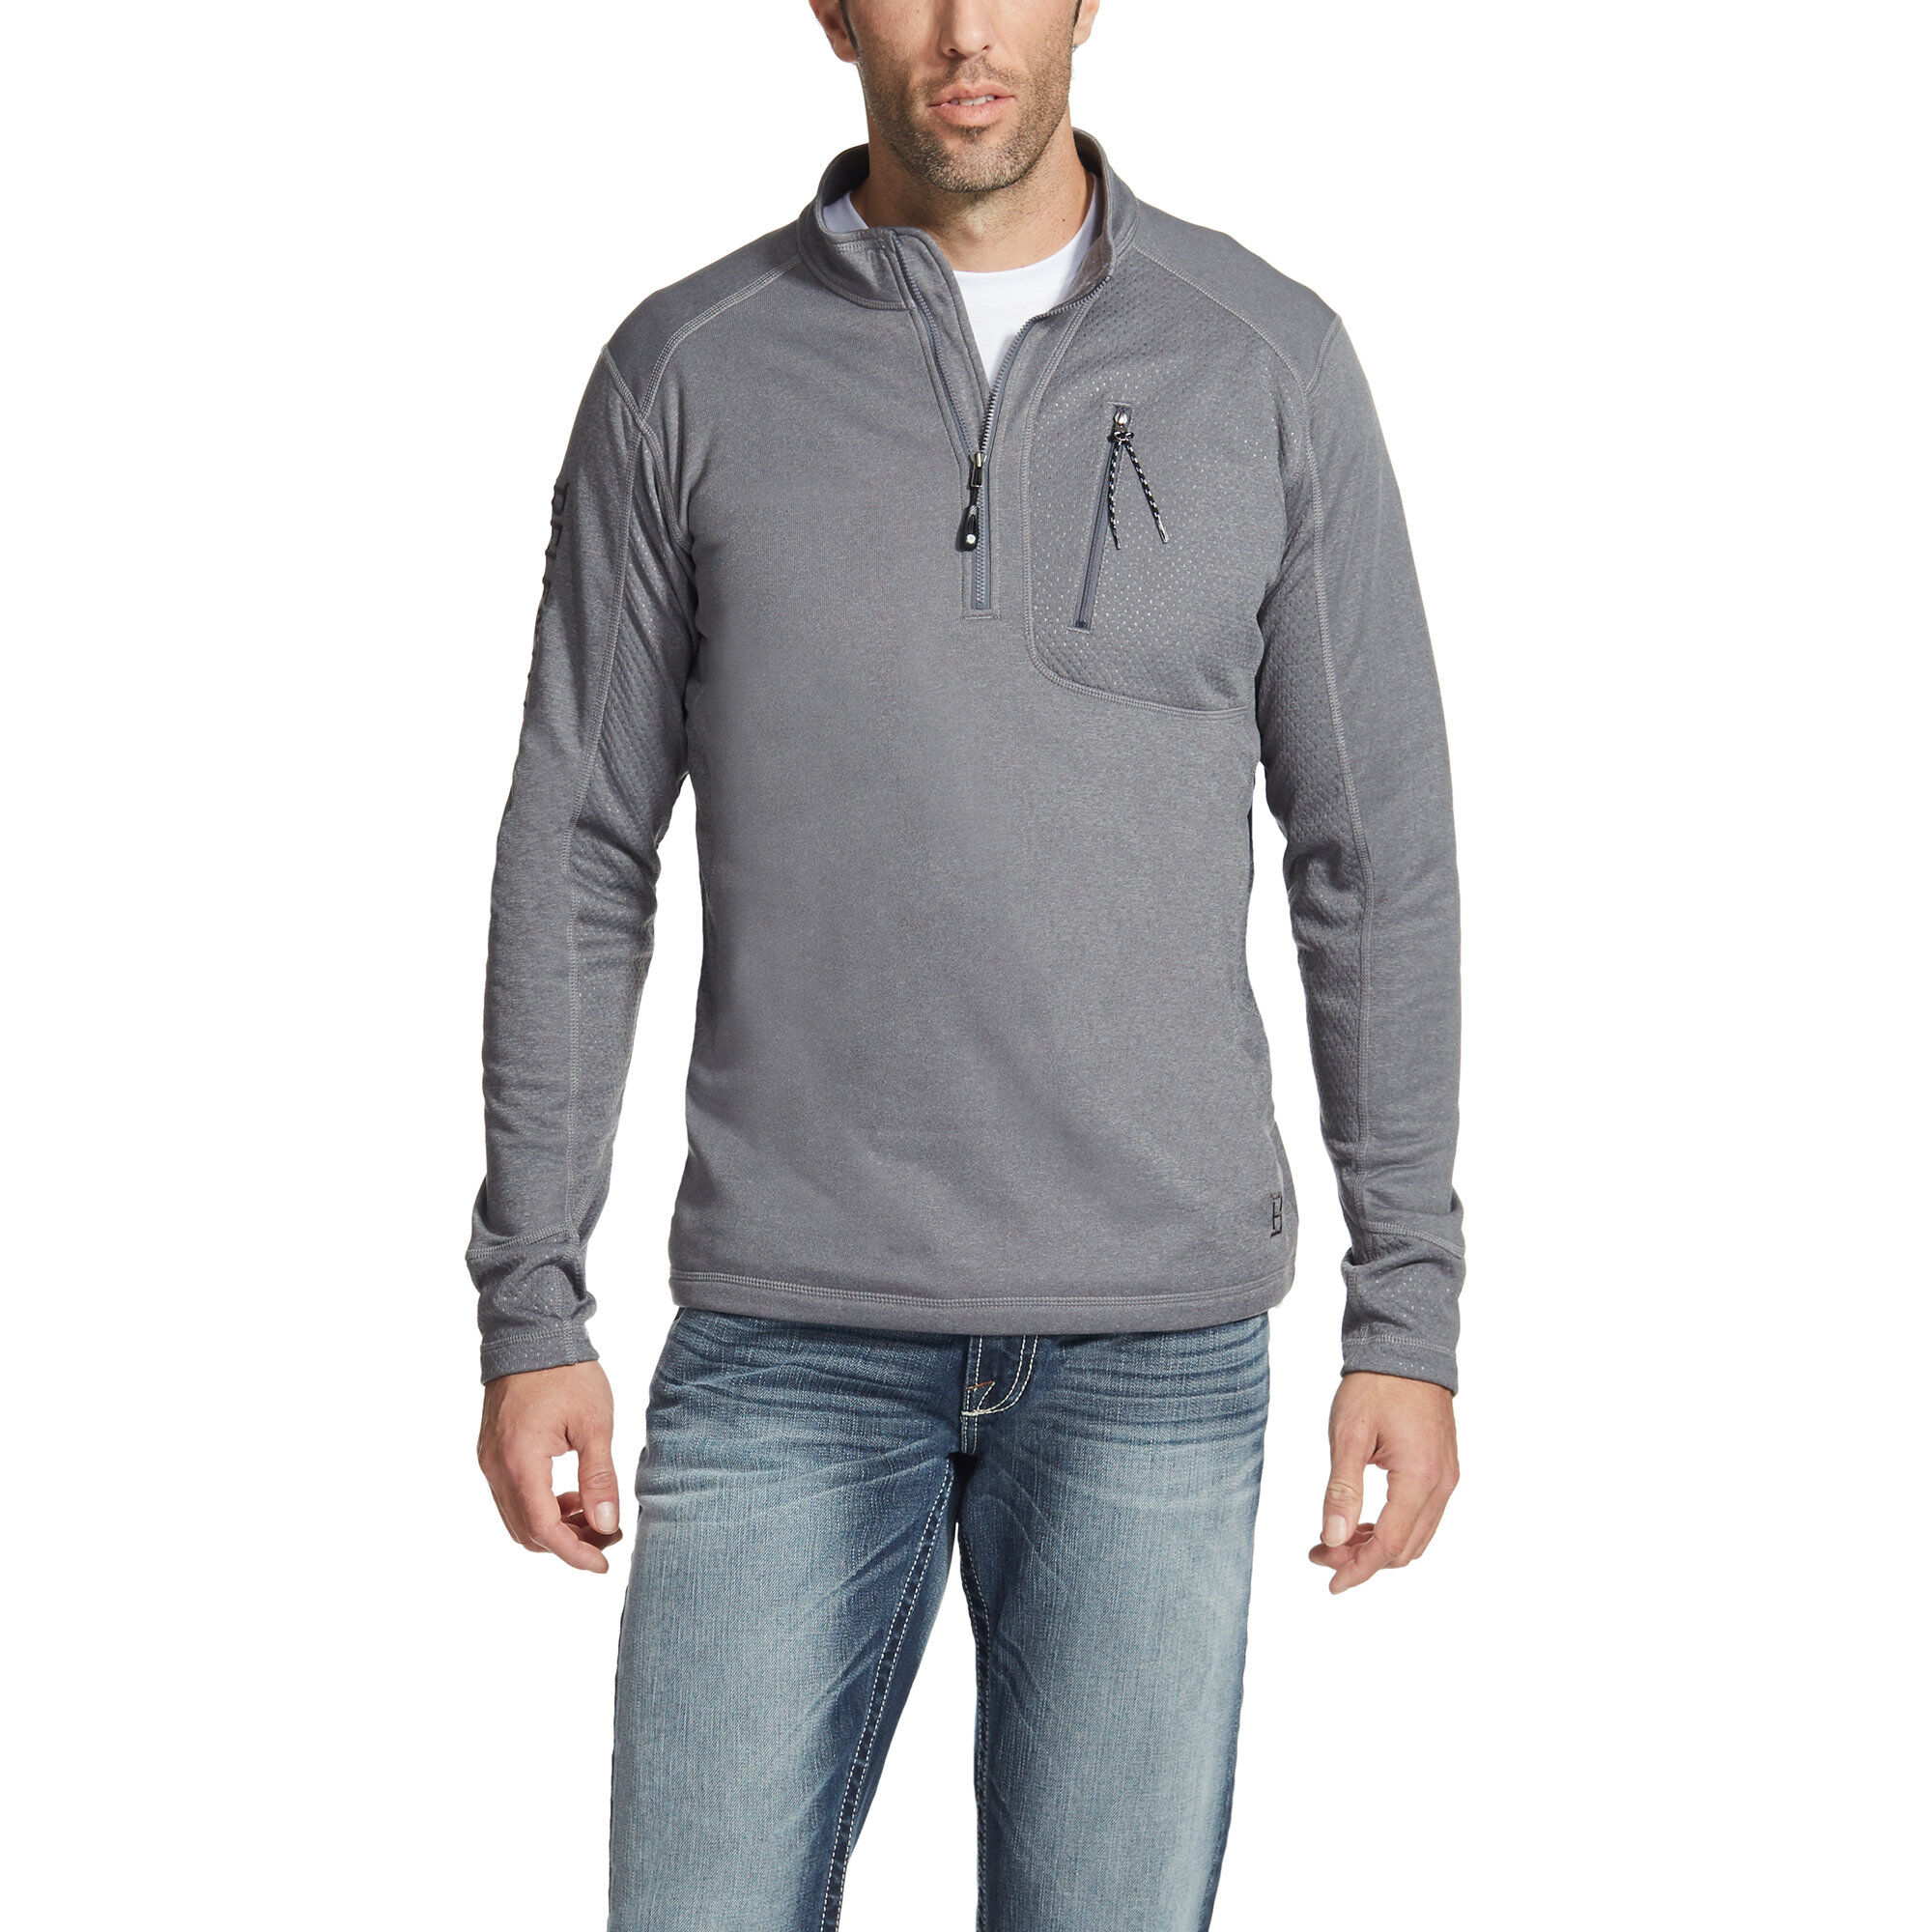 Relentless Motivation 1/4 Zip Sweatshirt